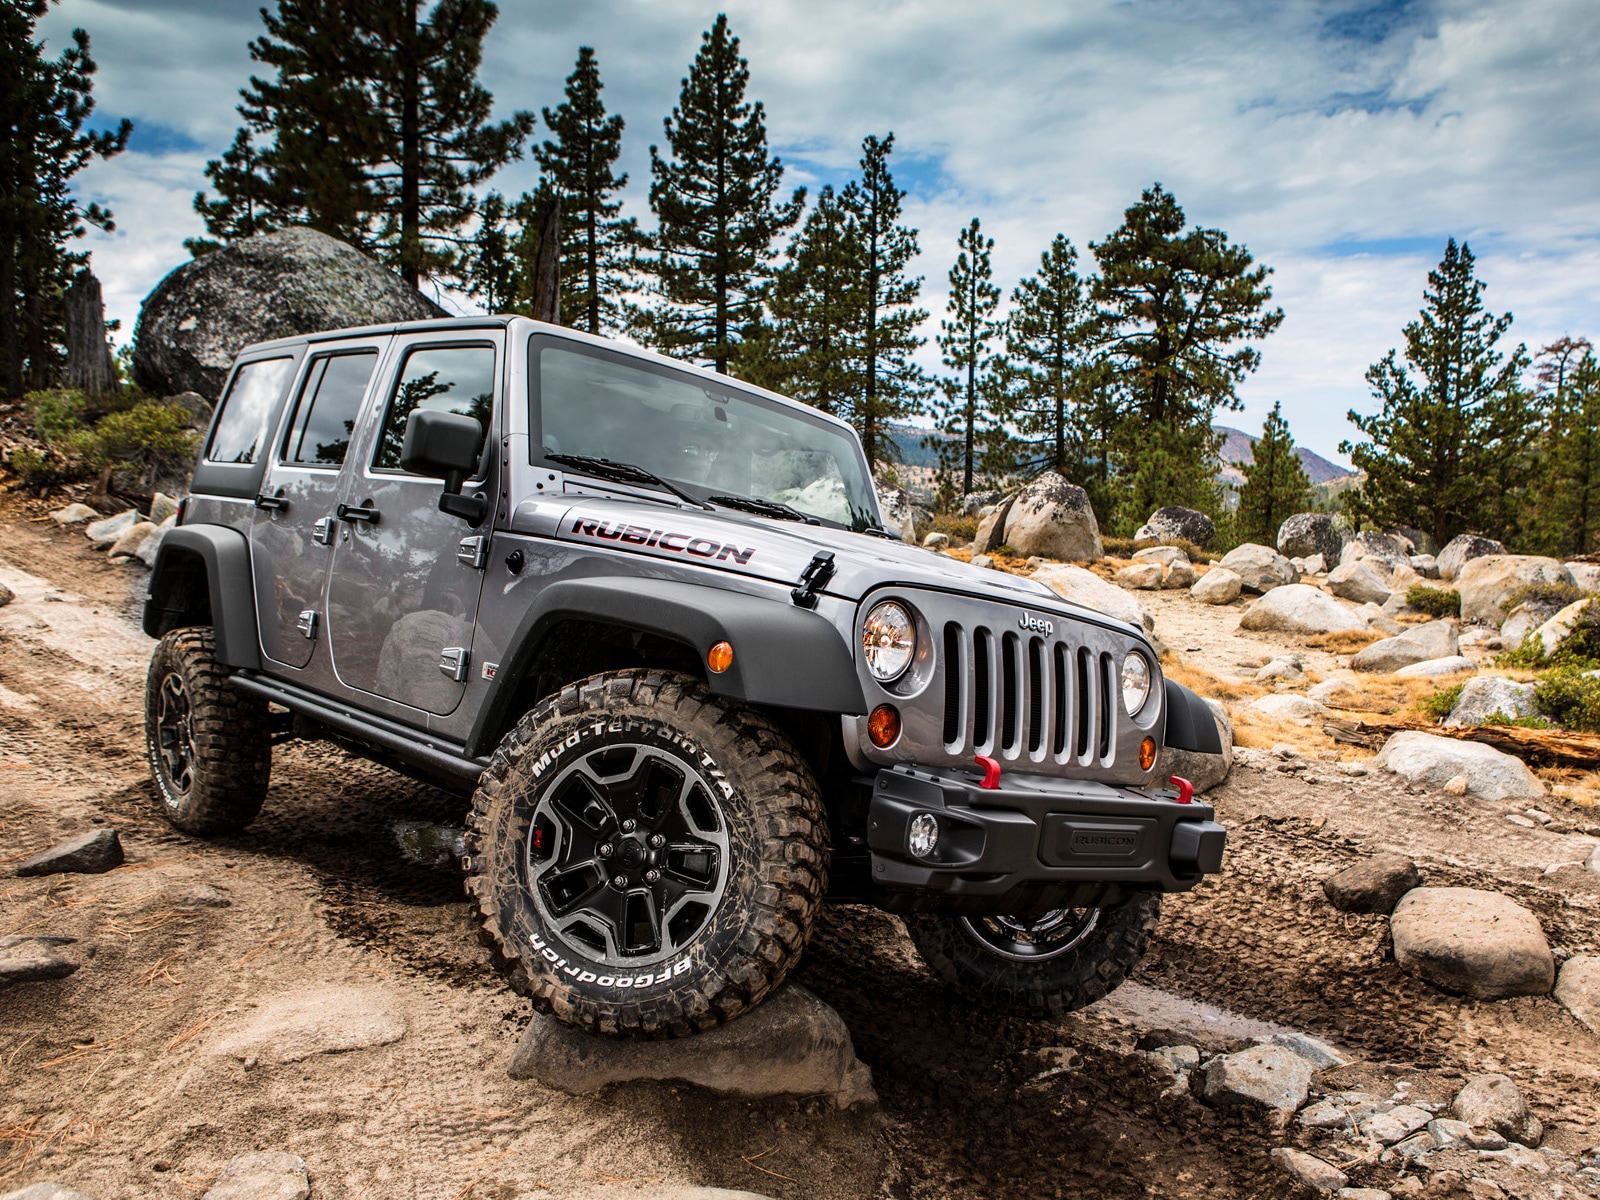 The 25 best jeep wrangler unlimited reviews ideas on pinterest jeep wrangler reviews jeep rubicon review and new jeep wrangler